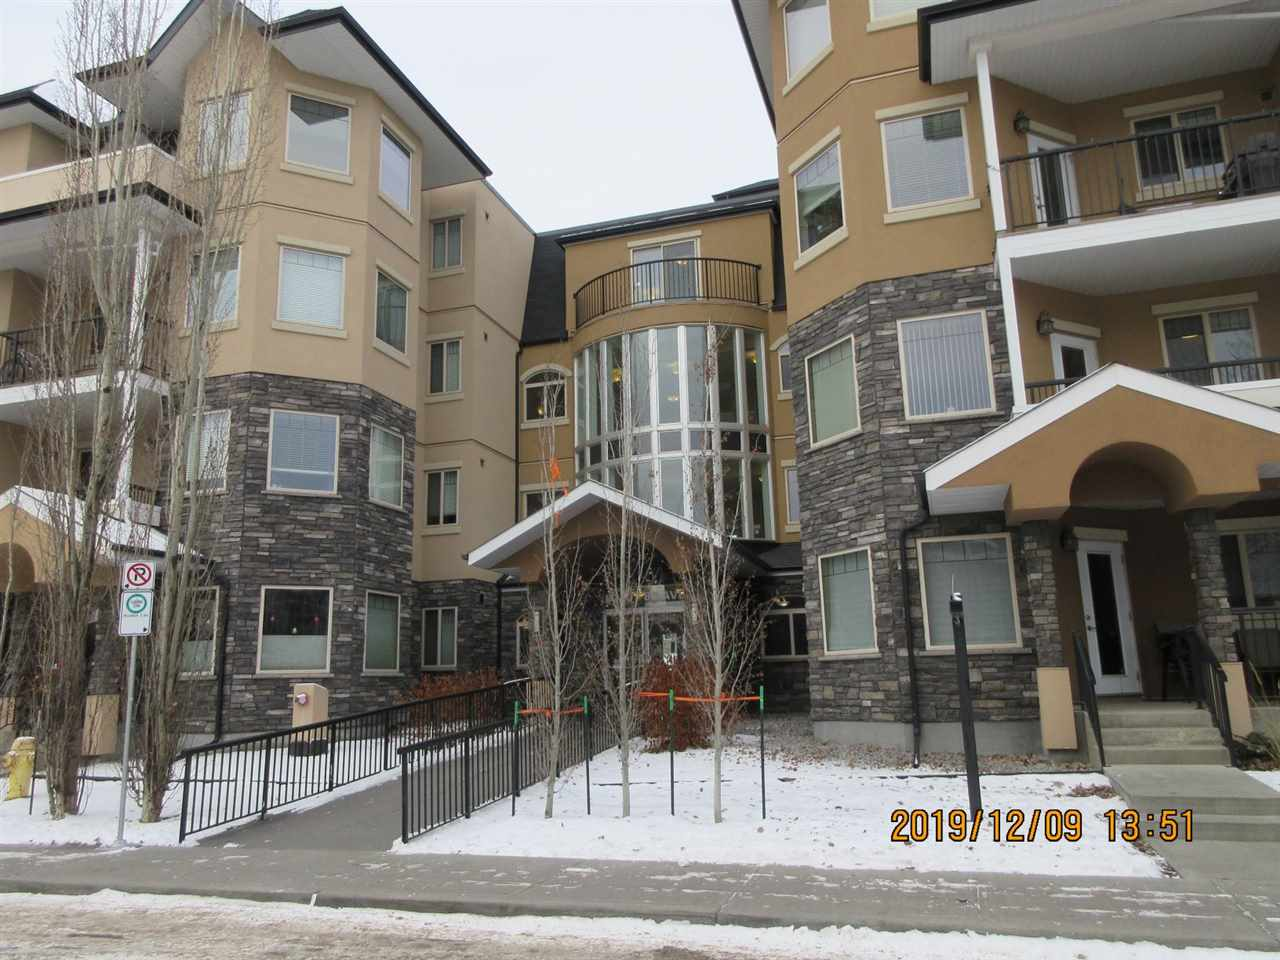 Lovely newer 2 bedroom, 2 bath condo with underground parking. Open design, hardwood, AC and a spacious patio. Desirable Whyte Avenue location near Bonnie Doon, LRT, Mill Creek Ravine, Farmers Market and  the great shops/restaurants/nightlife of Whyte Avenue.